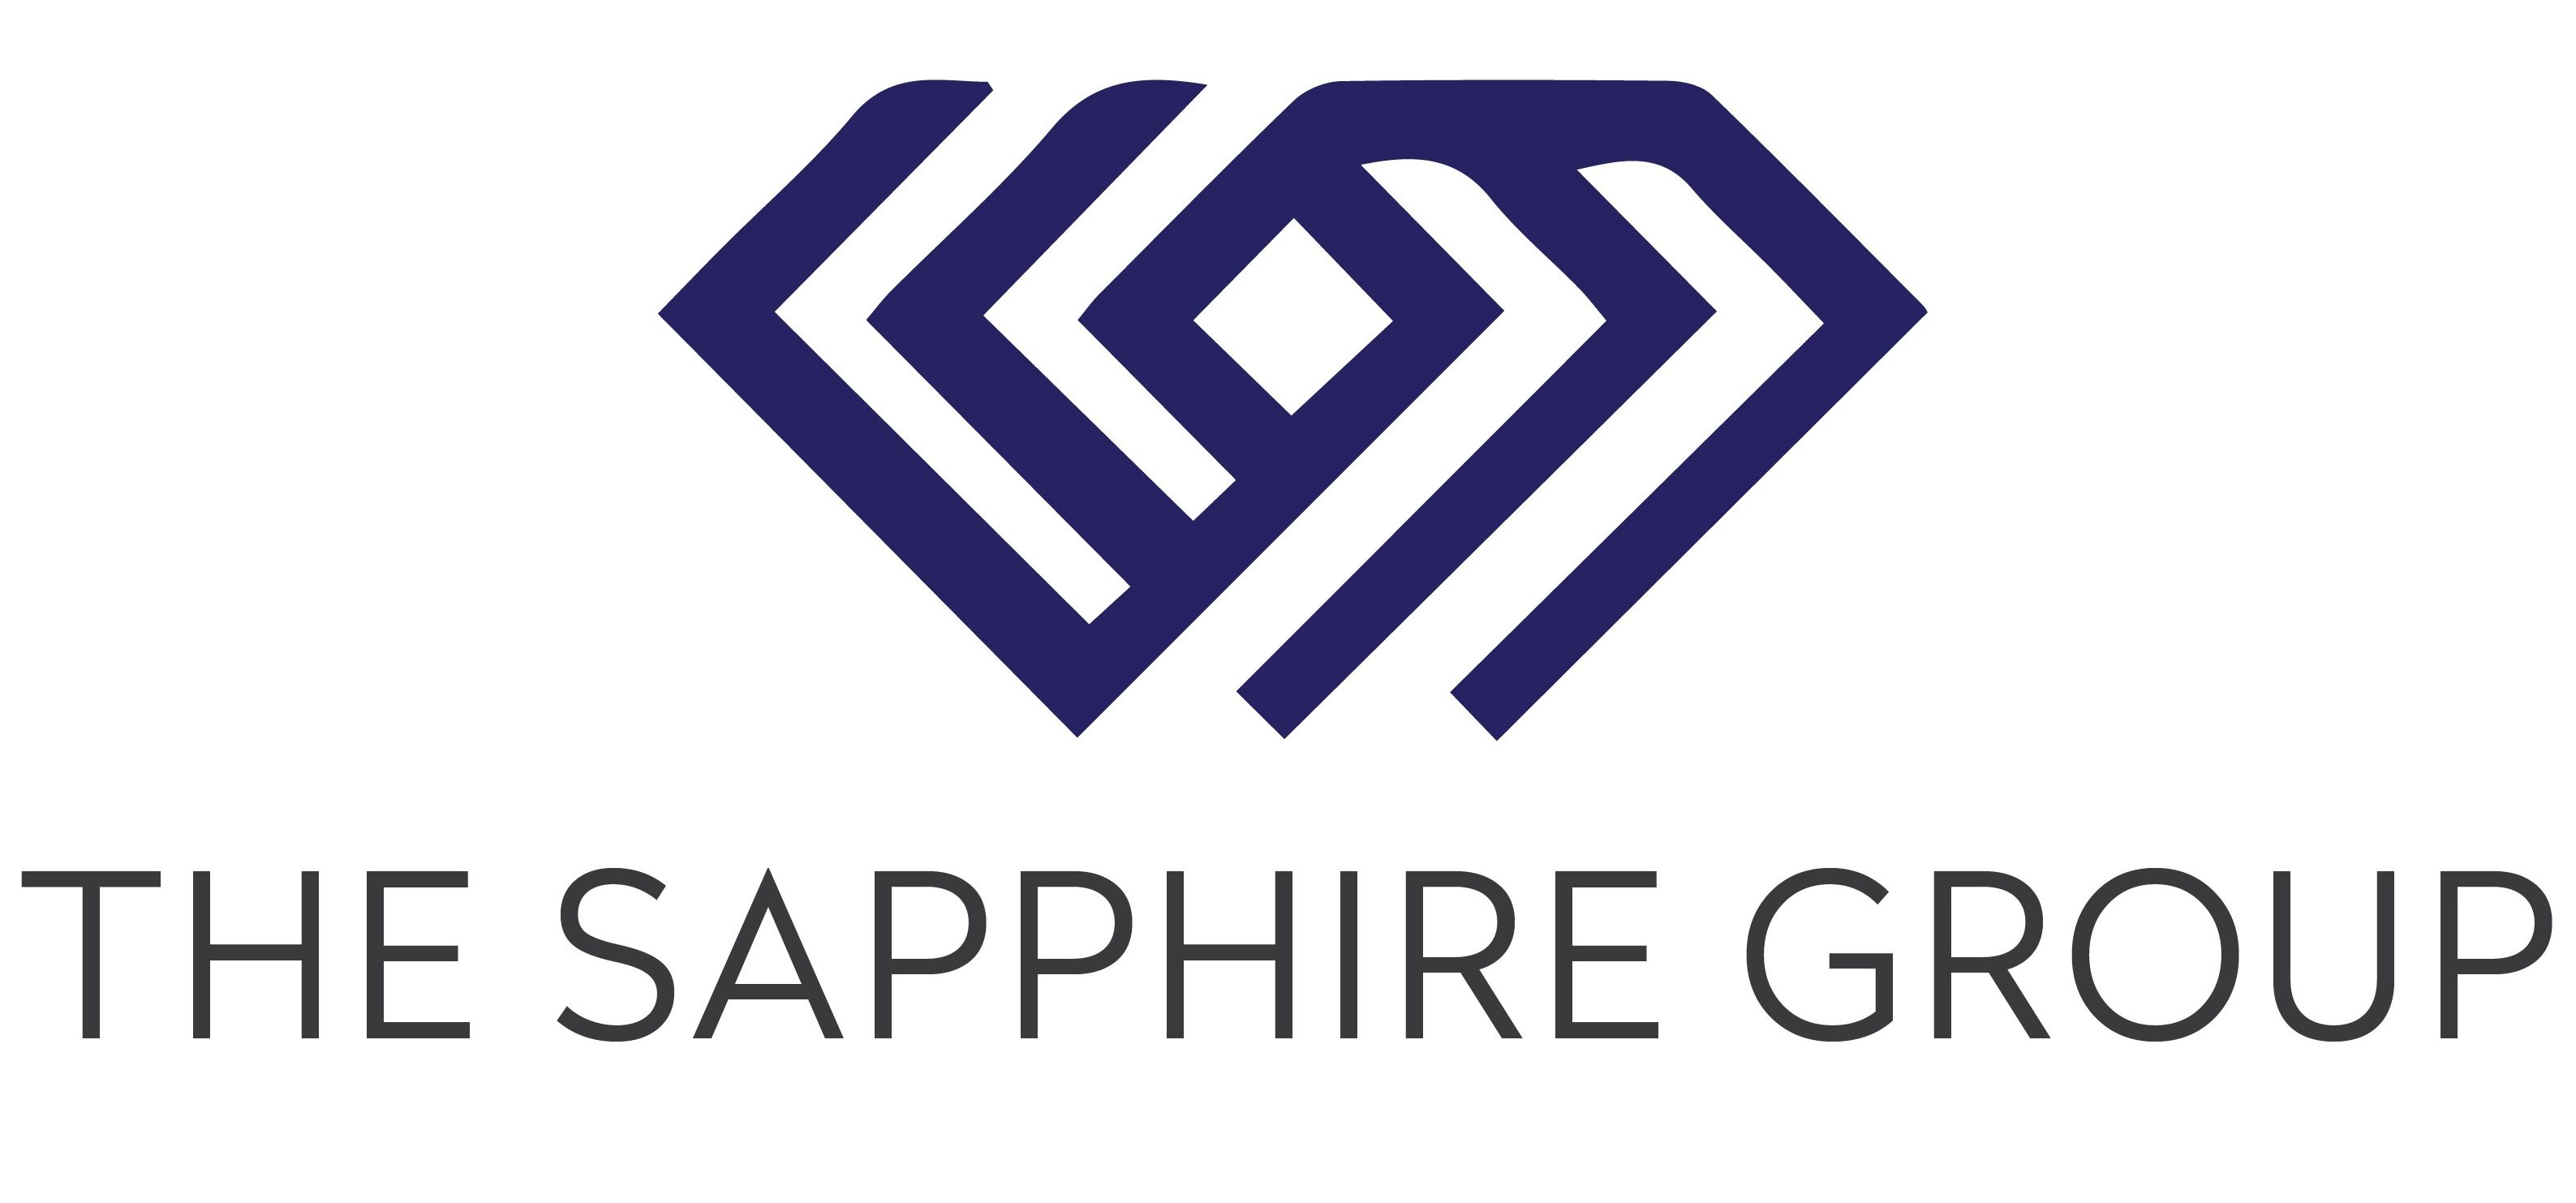 The Sapphire Group Inc.